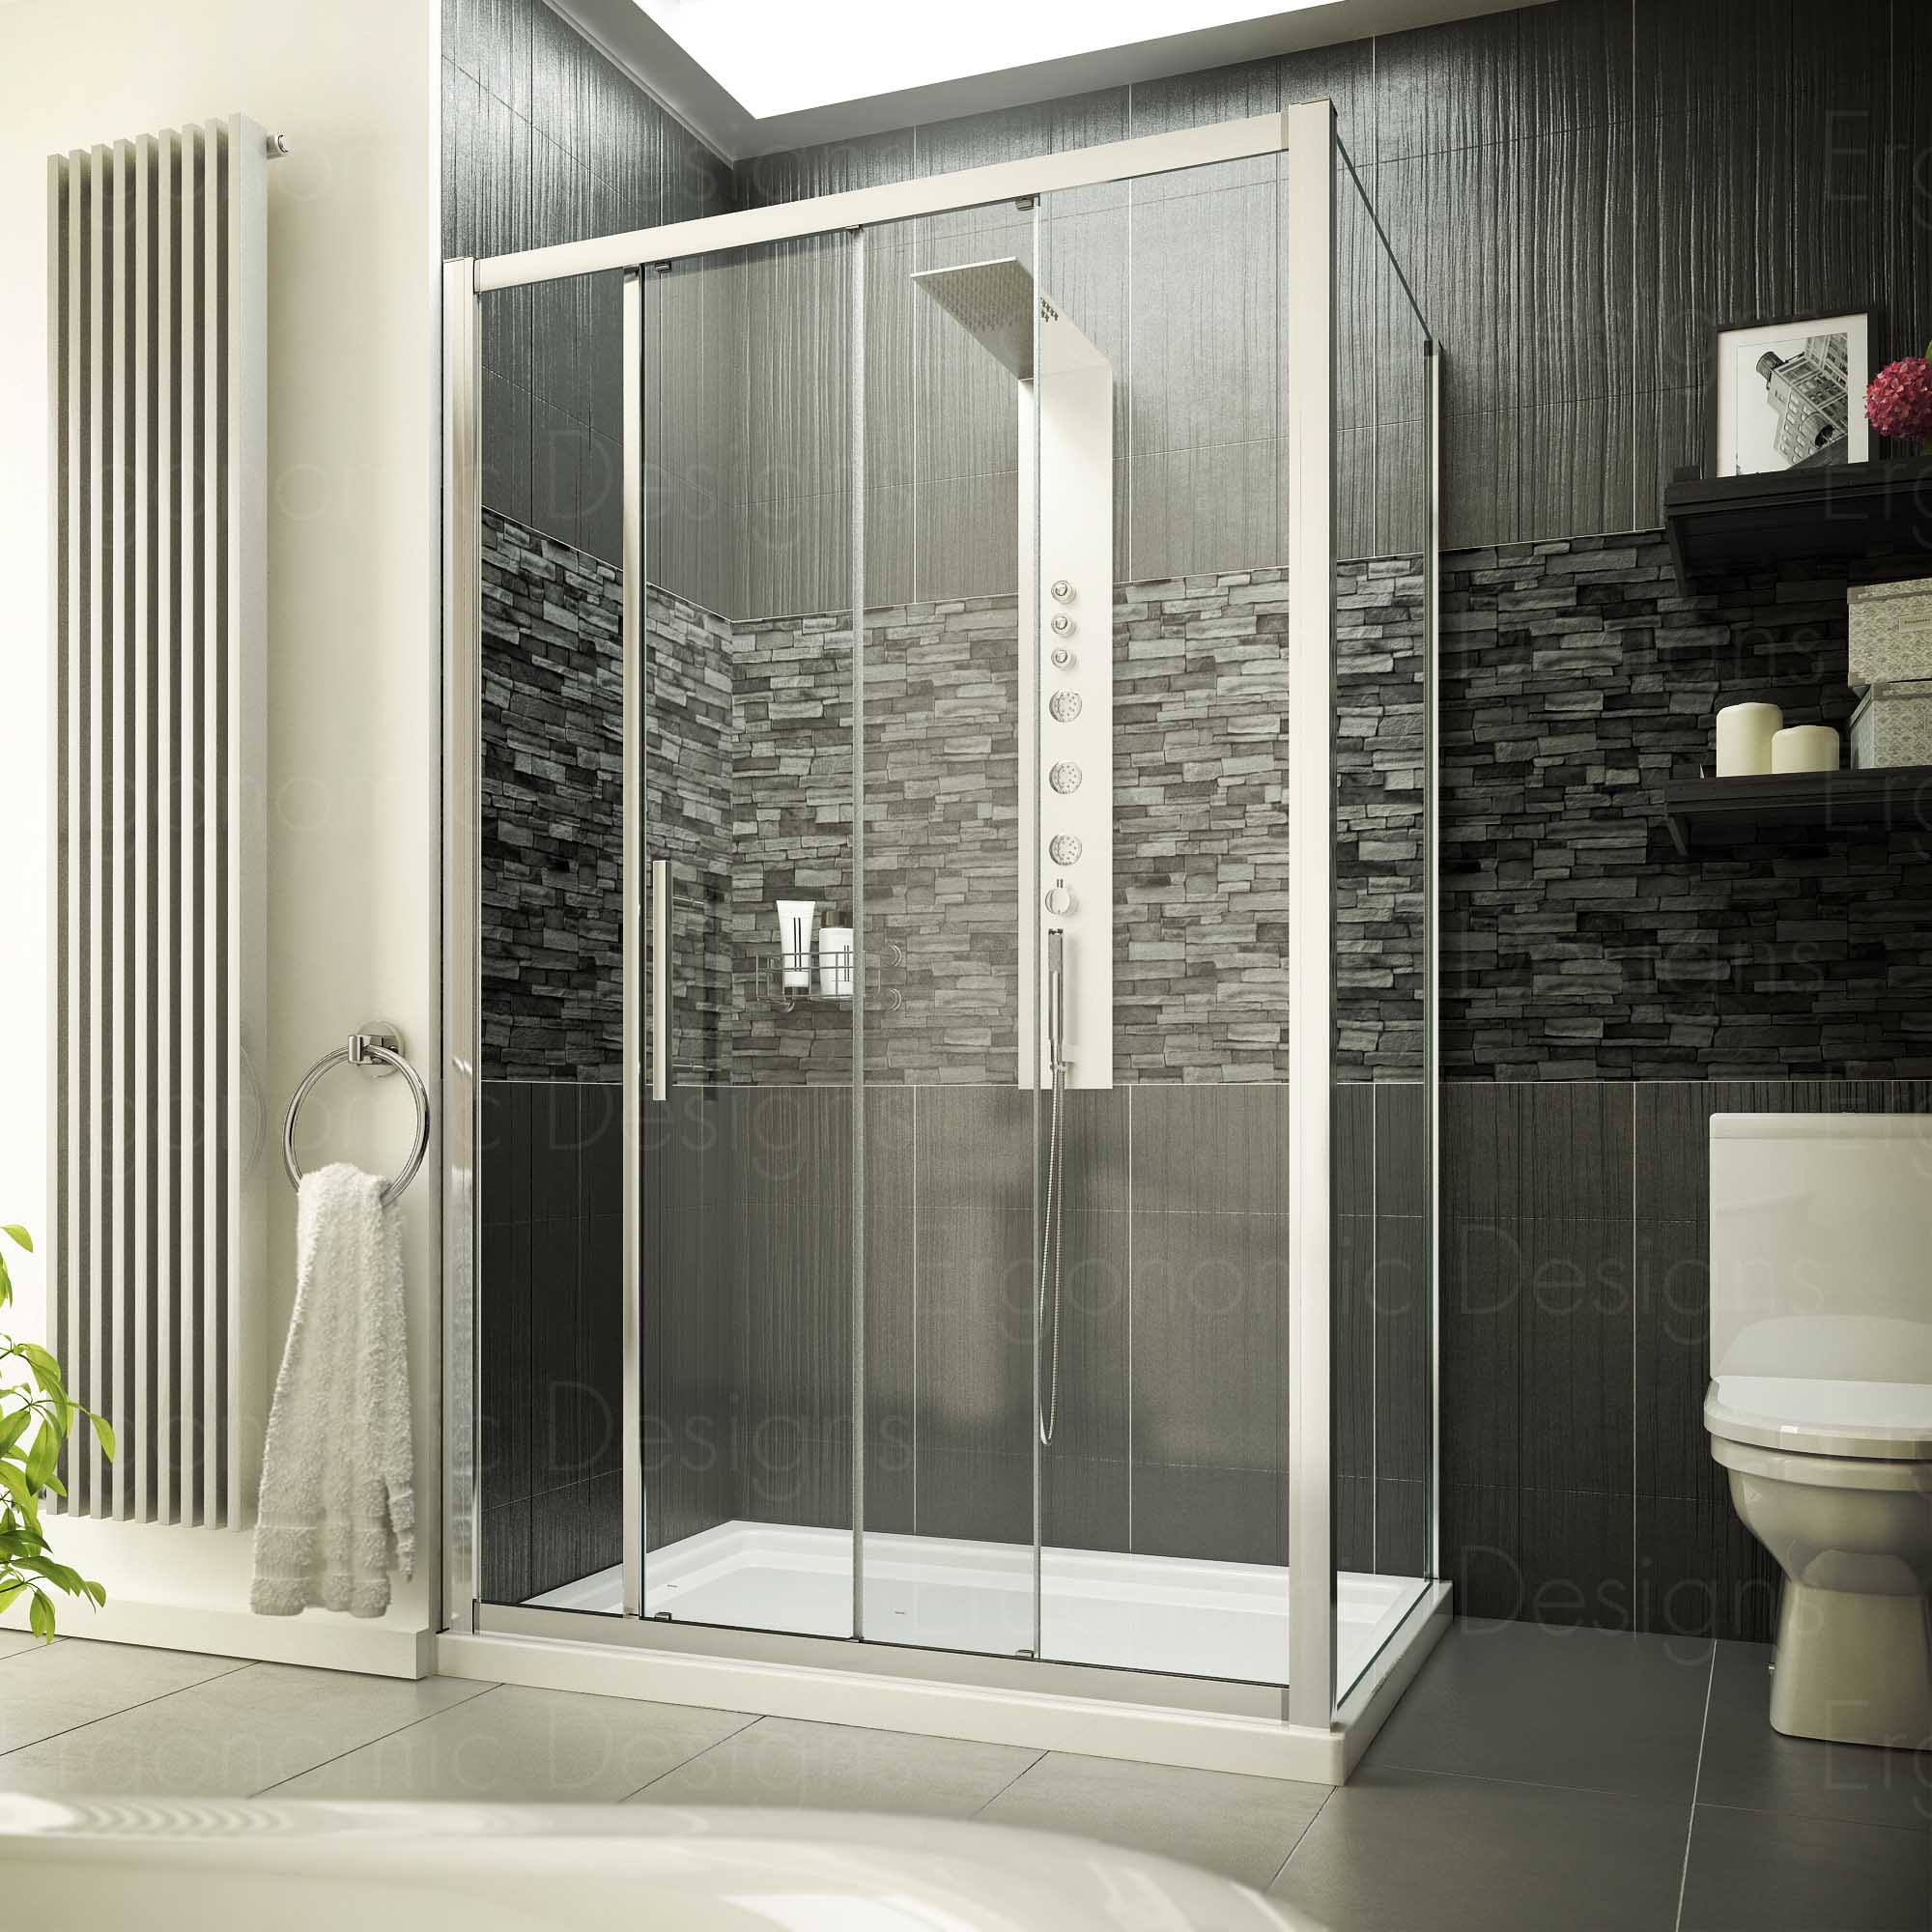 1200 x 760 Sliding Door Shower Enclosure 8mm Easy Clean Glass and ...